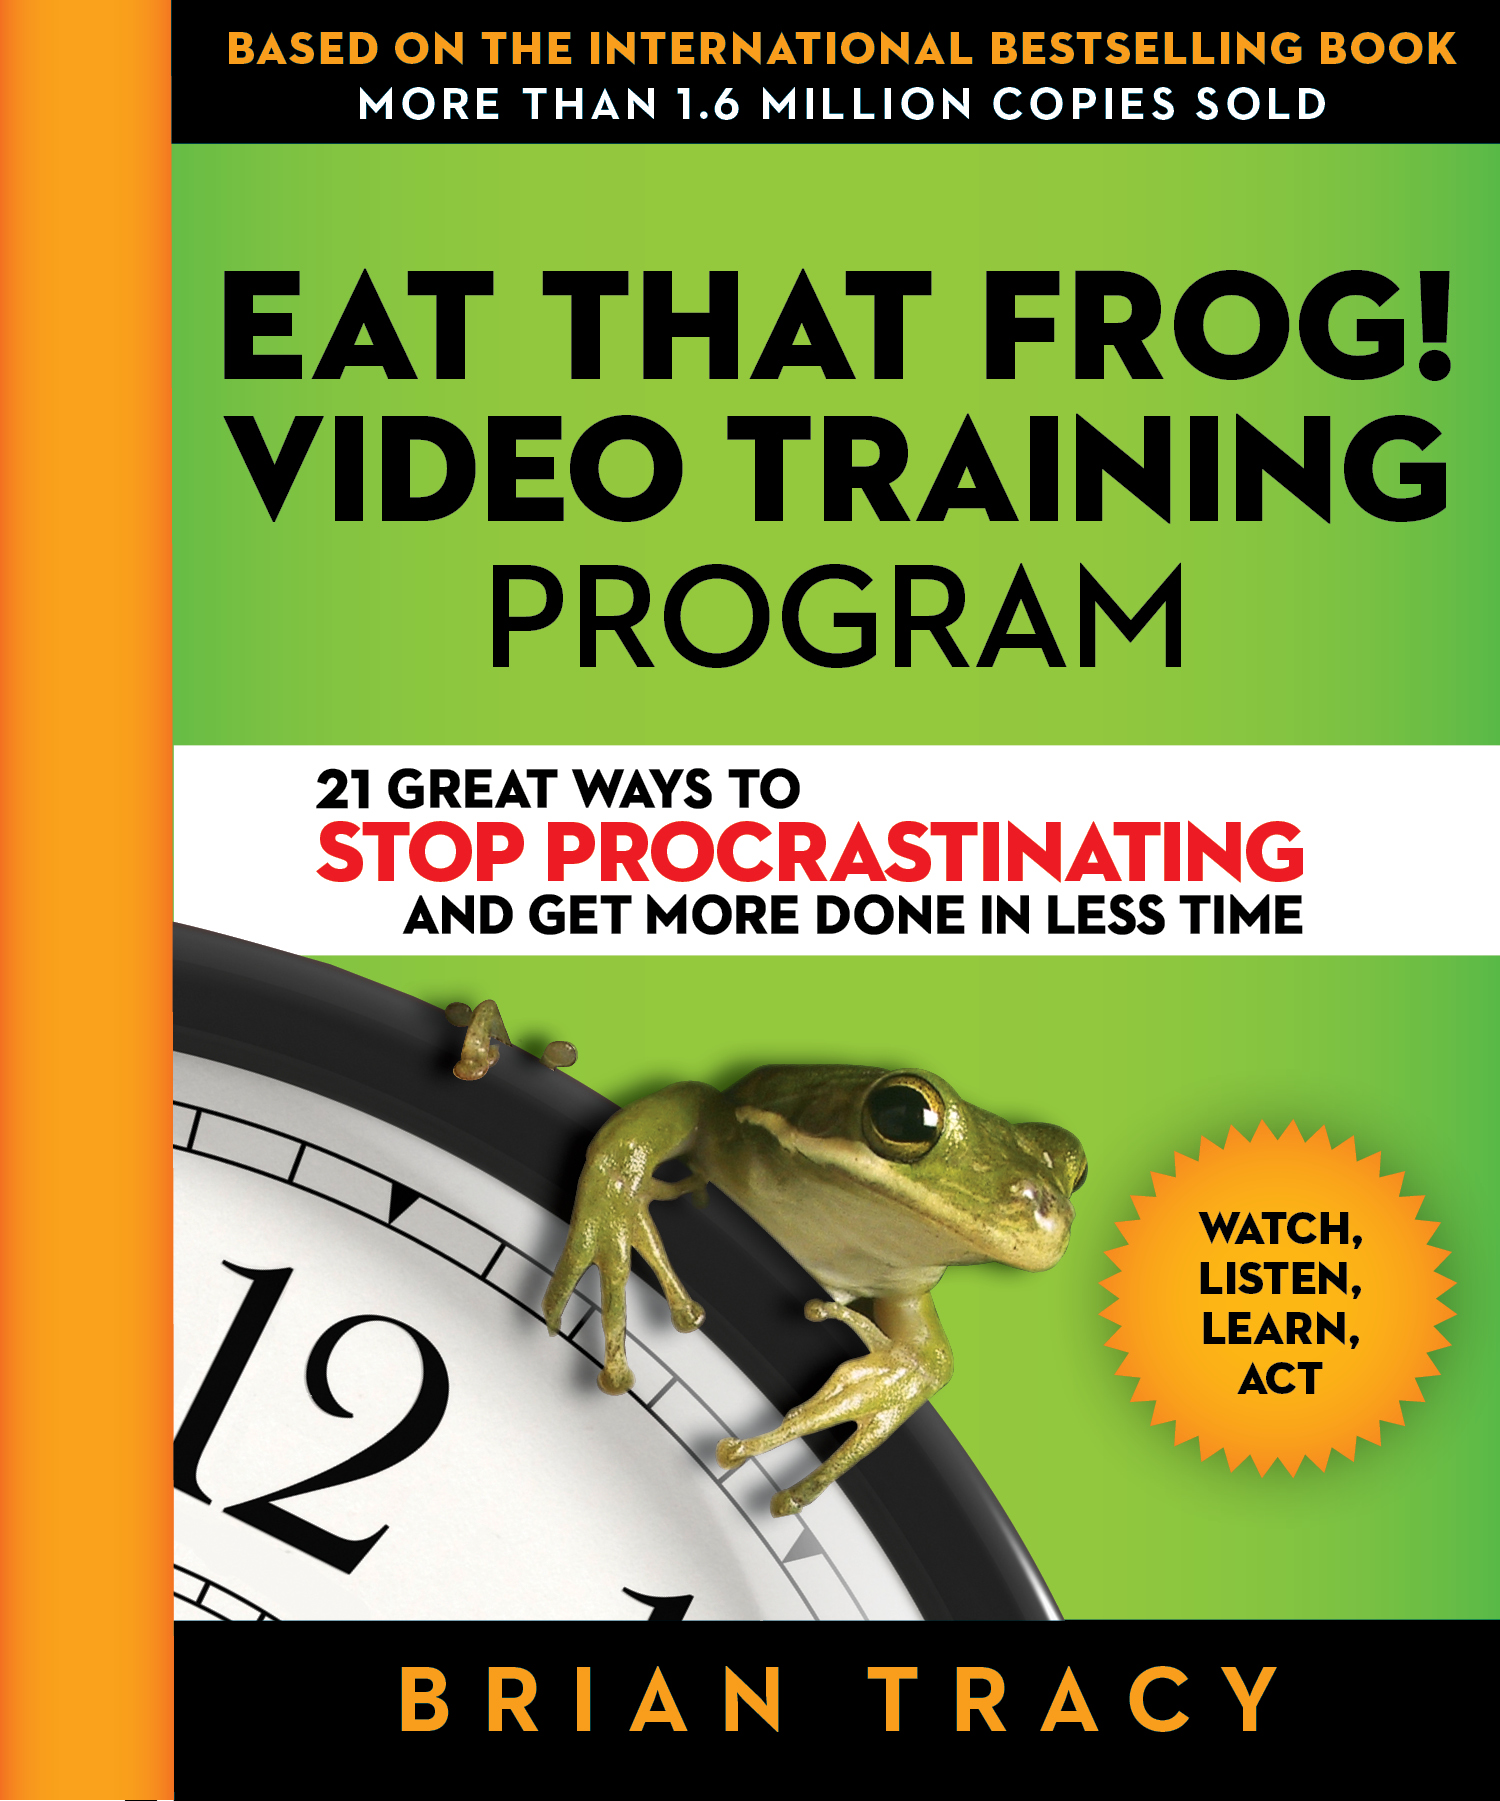 Eat That Frog! Video